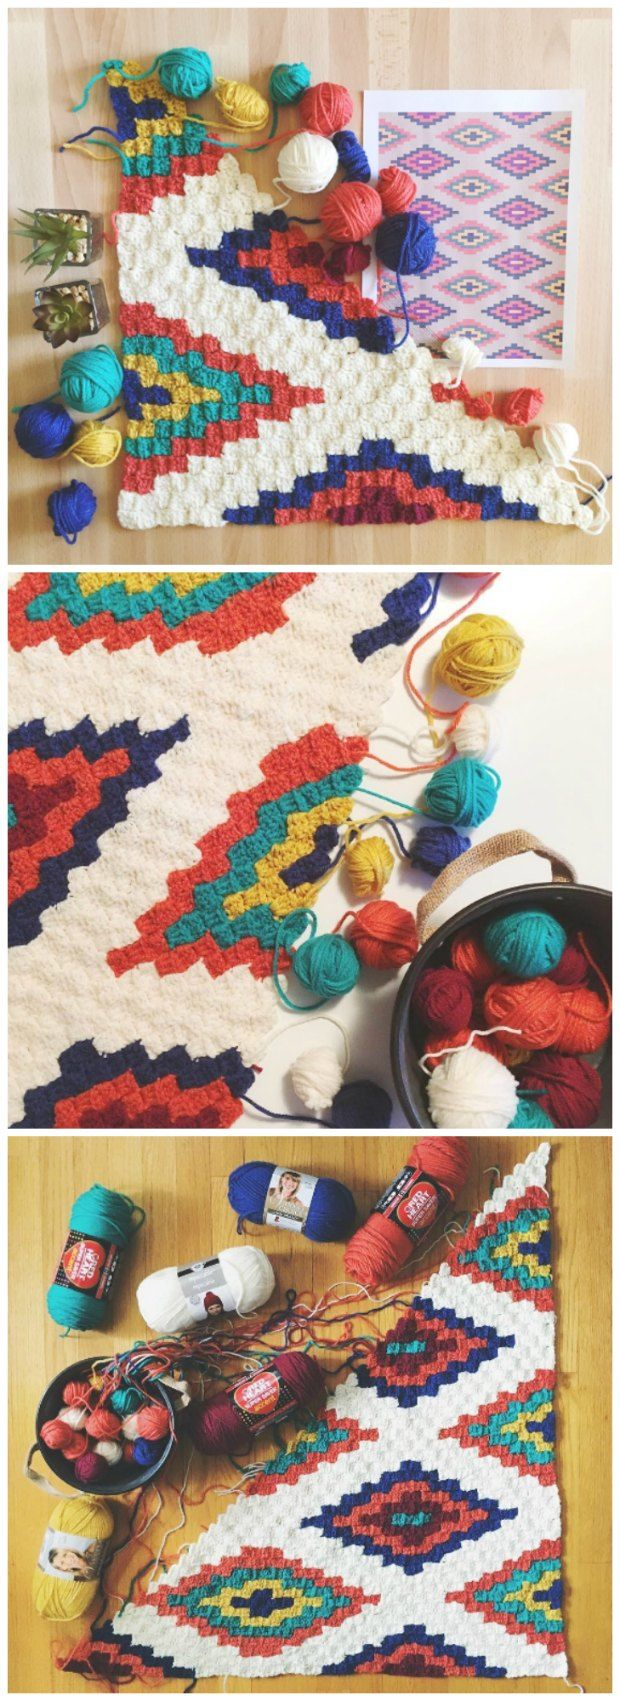 Free crochet pattern. Southwestern style corner to corner crochet throw blanket pattern with graph. C2C